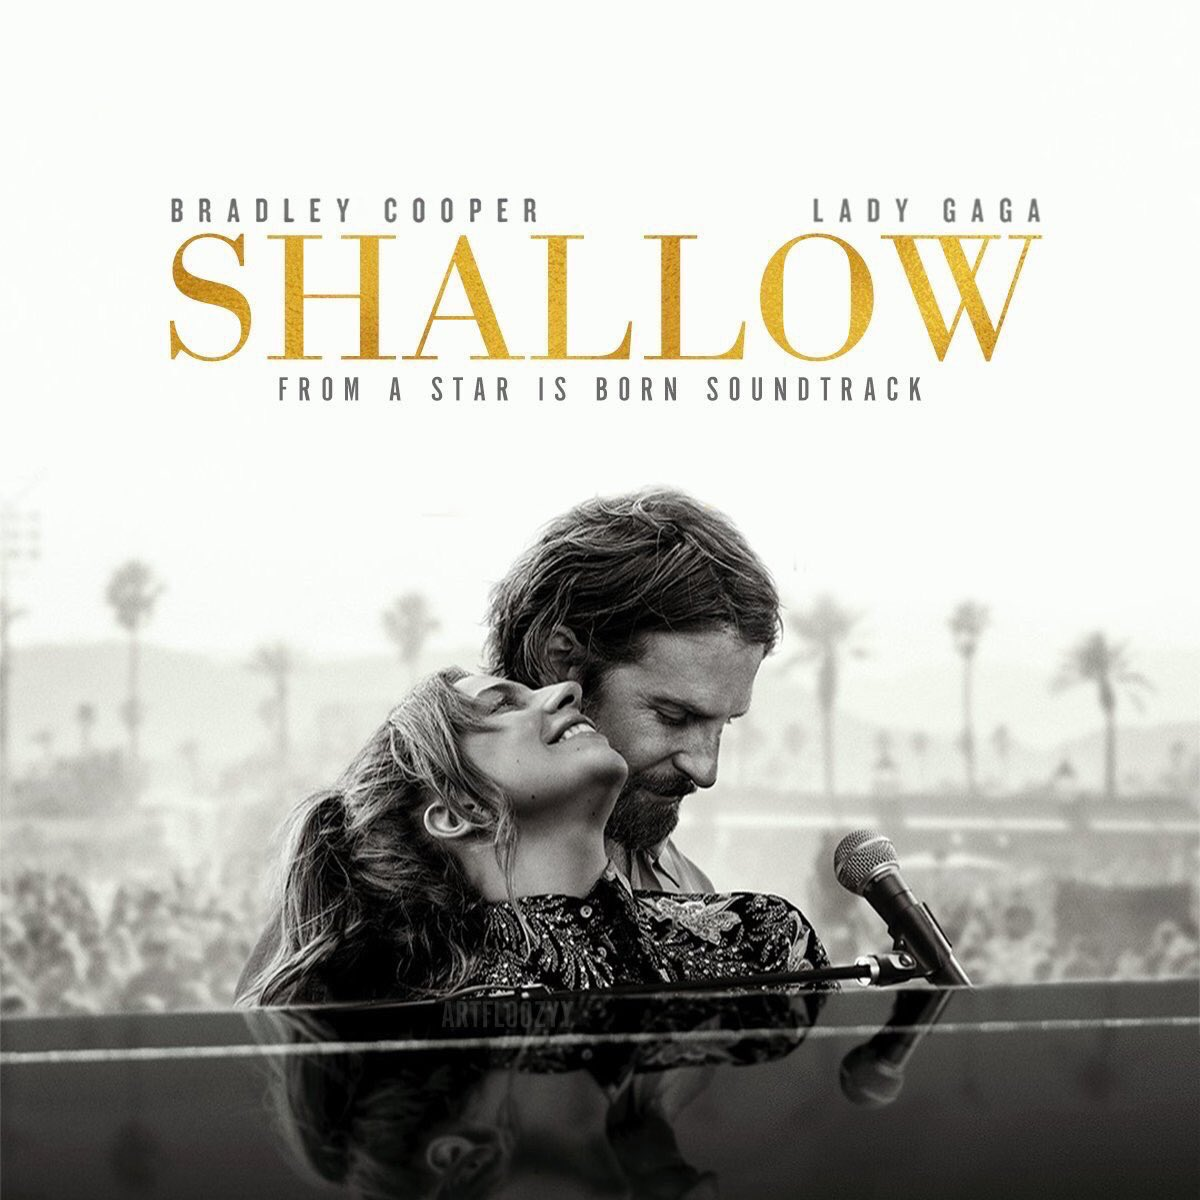 """Shallow"" has now surpassed ""Bad Romance"" and it's now Lady Gaga's most liked video on YouTube with over 3.6M likes. <br>http://pic.twitter.com/bdbXAeAvUP"